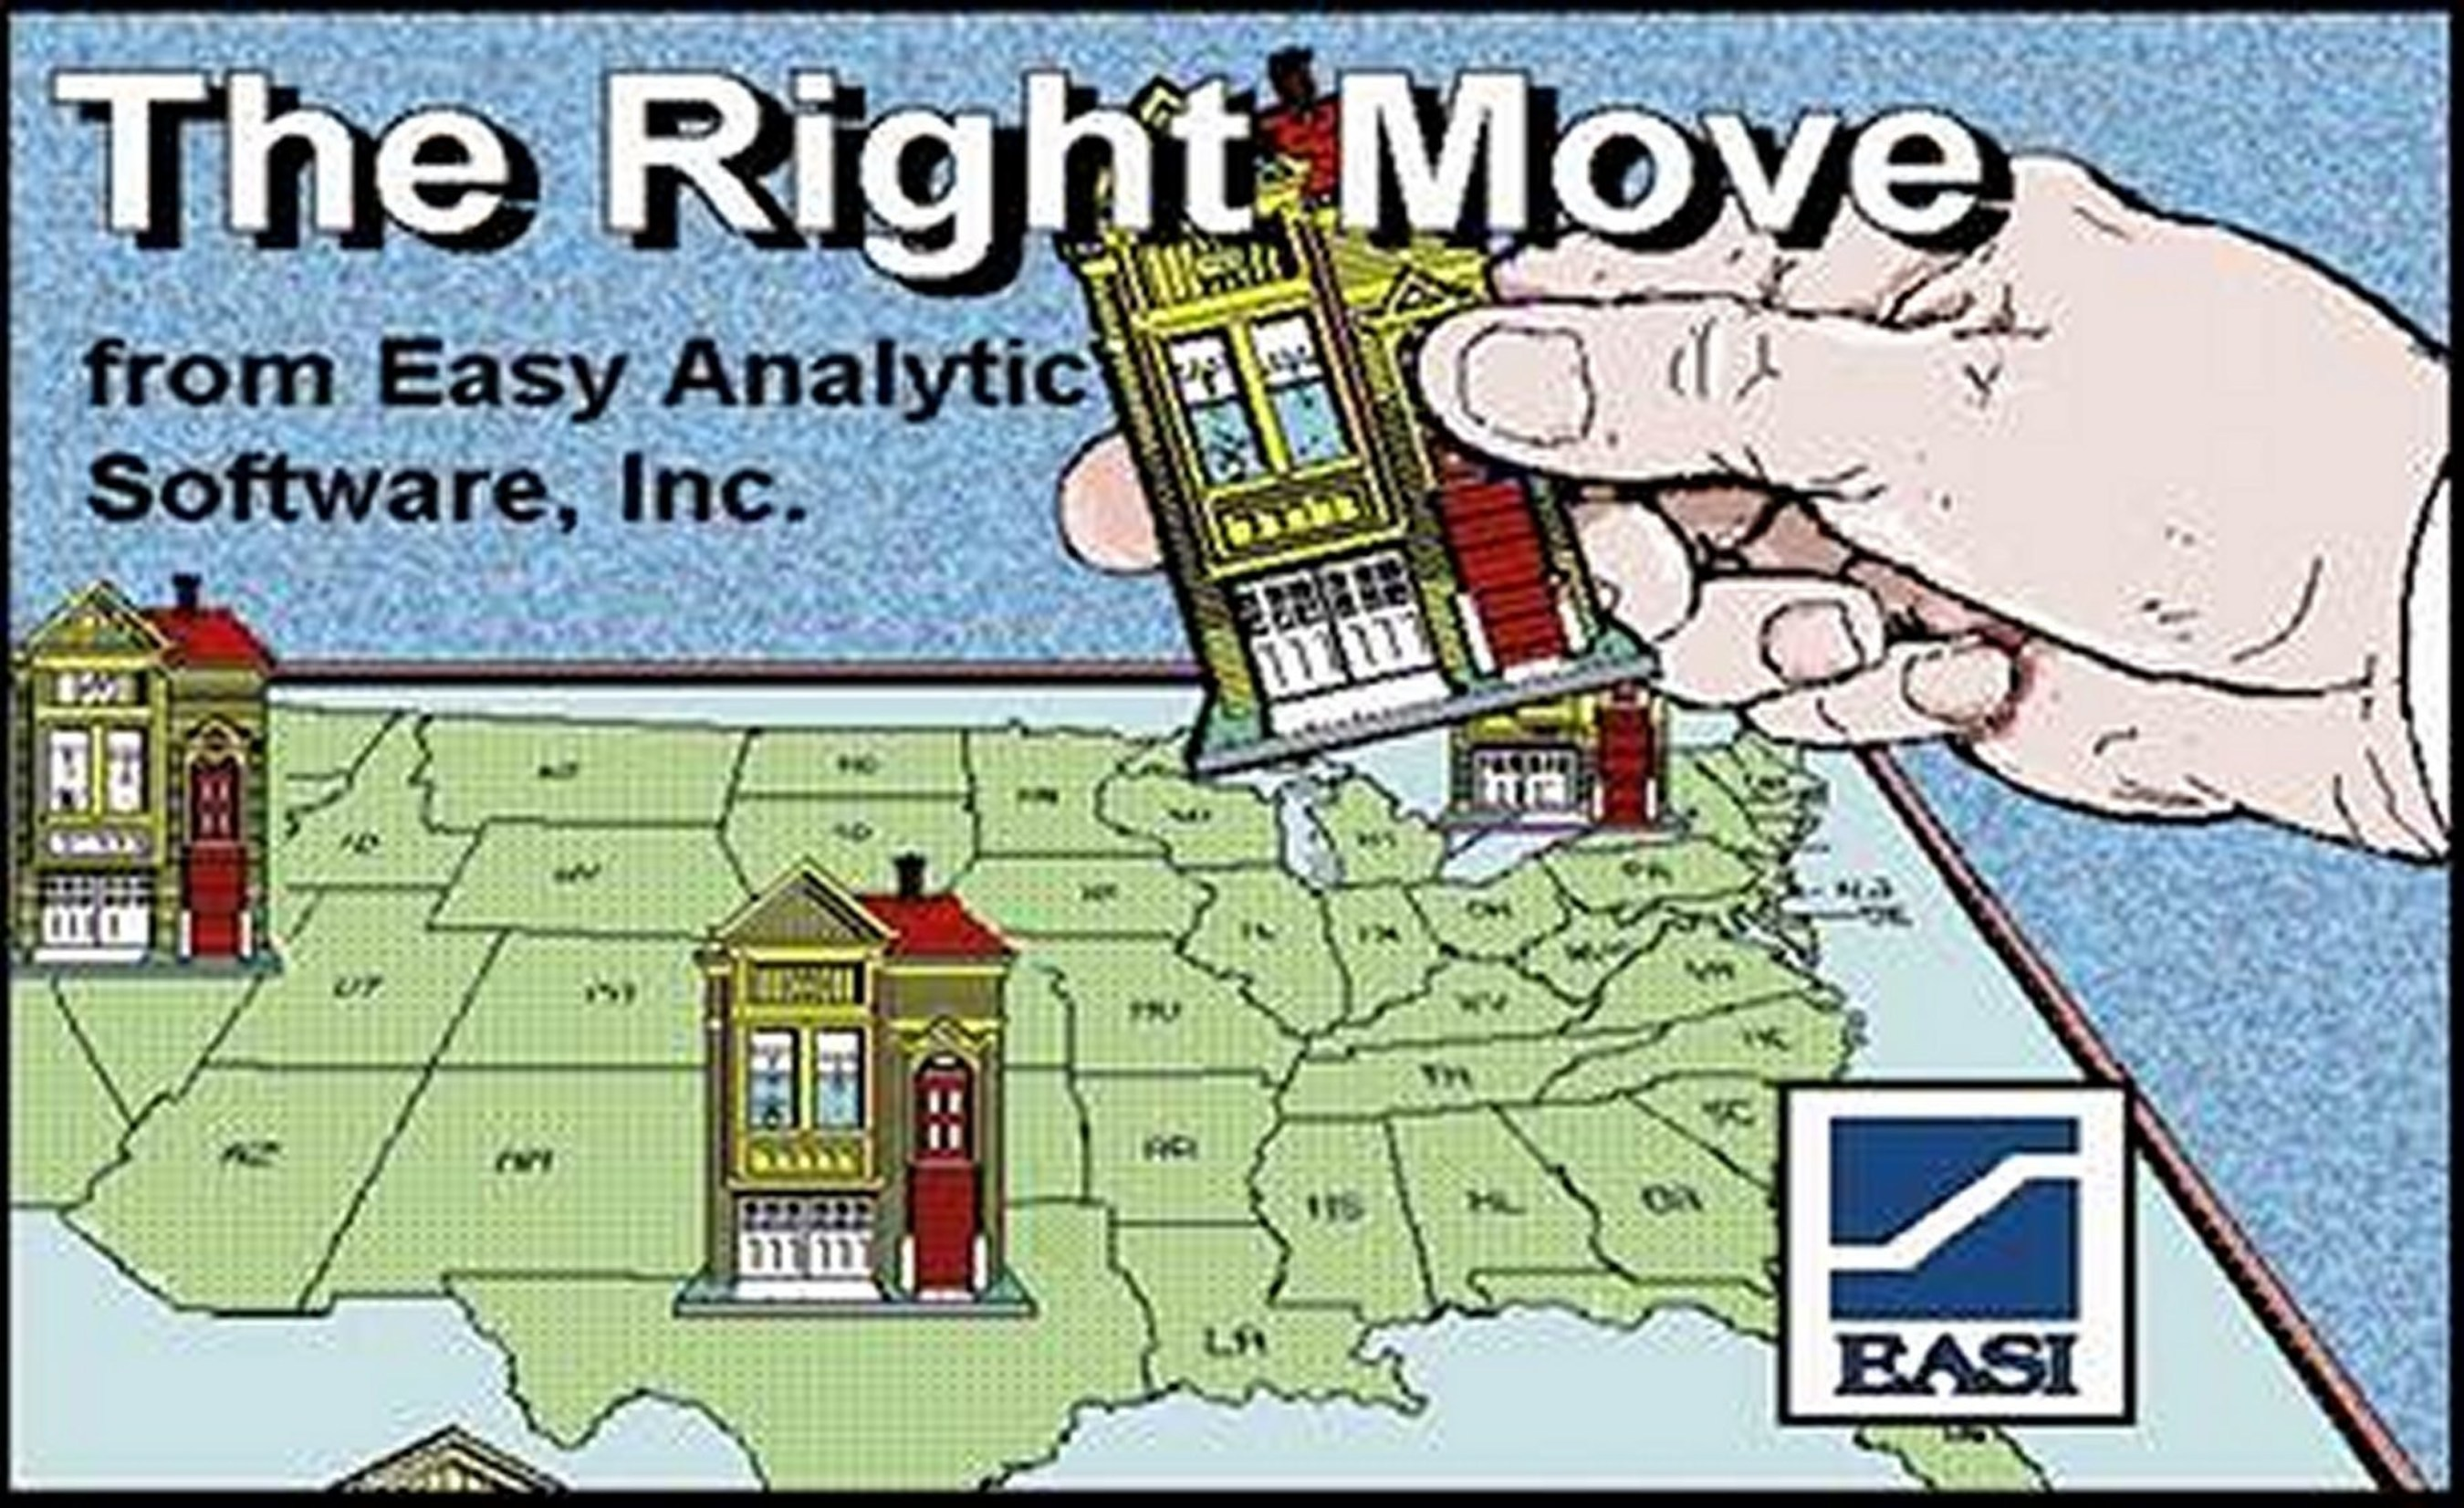 The Right Move', A New Mobile App for Location Analysis -- Anytime, Anywhere